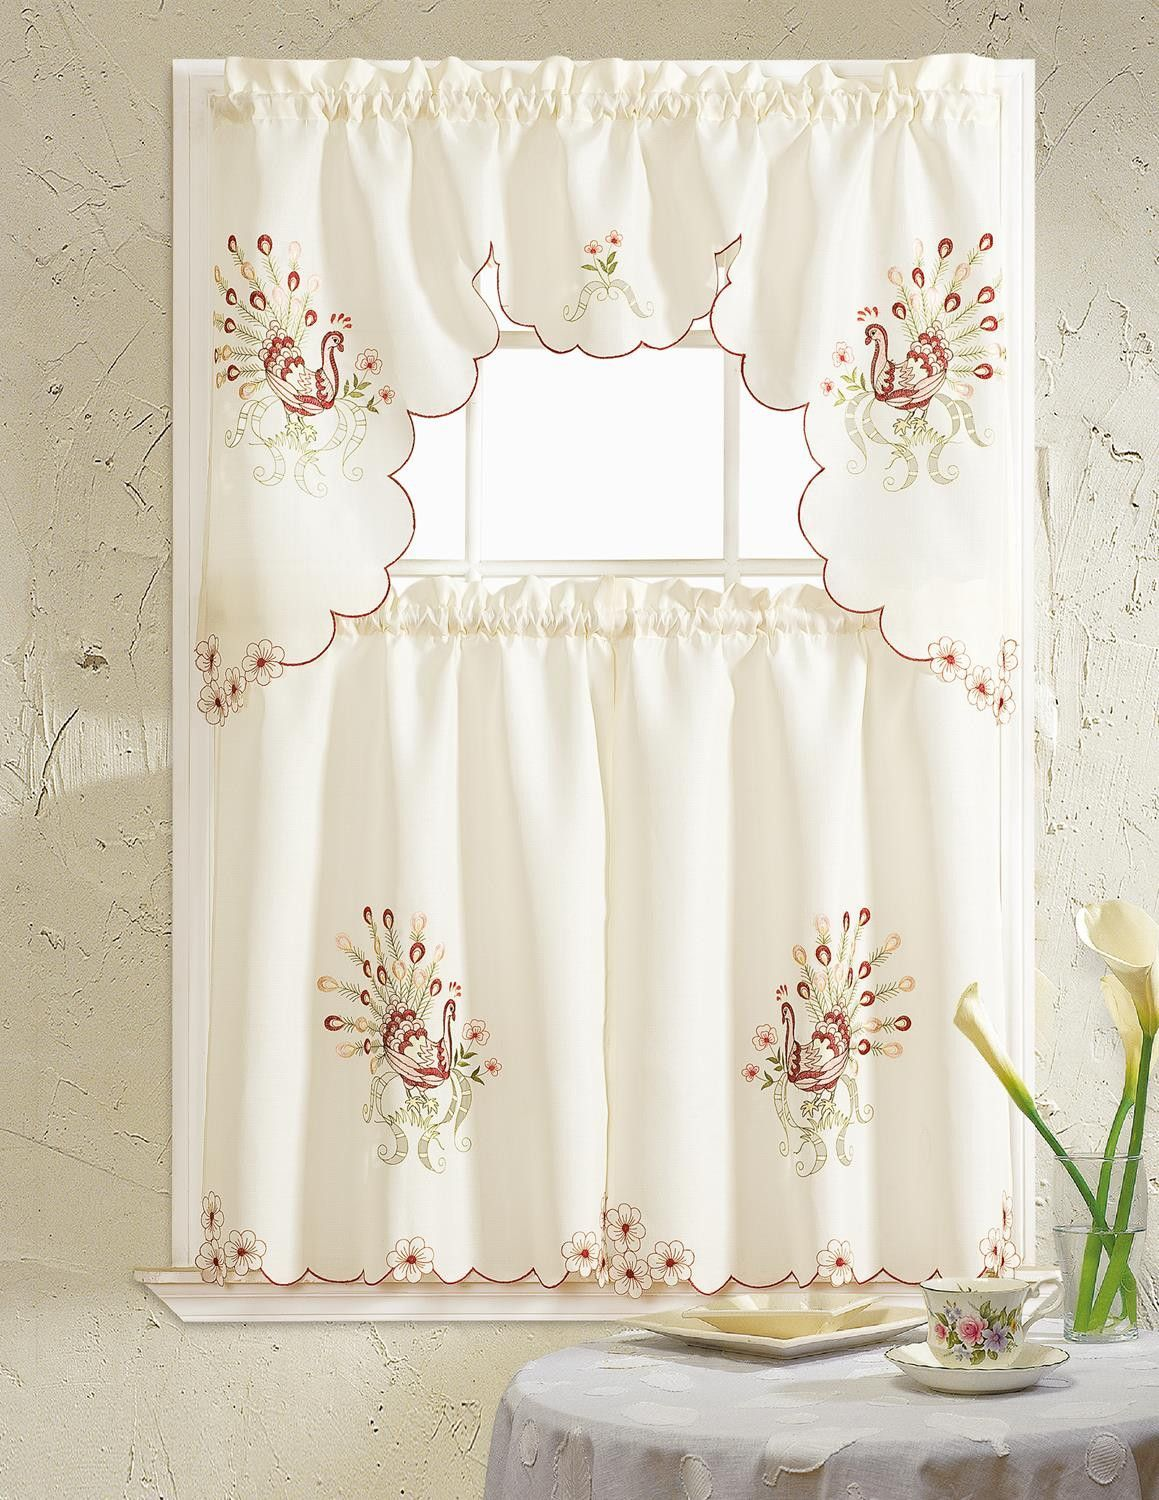 Peacock Embroidered Ruffle Kitchen Curtain Set Swag Valance 60 X 36 Two Tiers 30